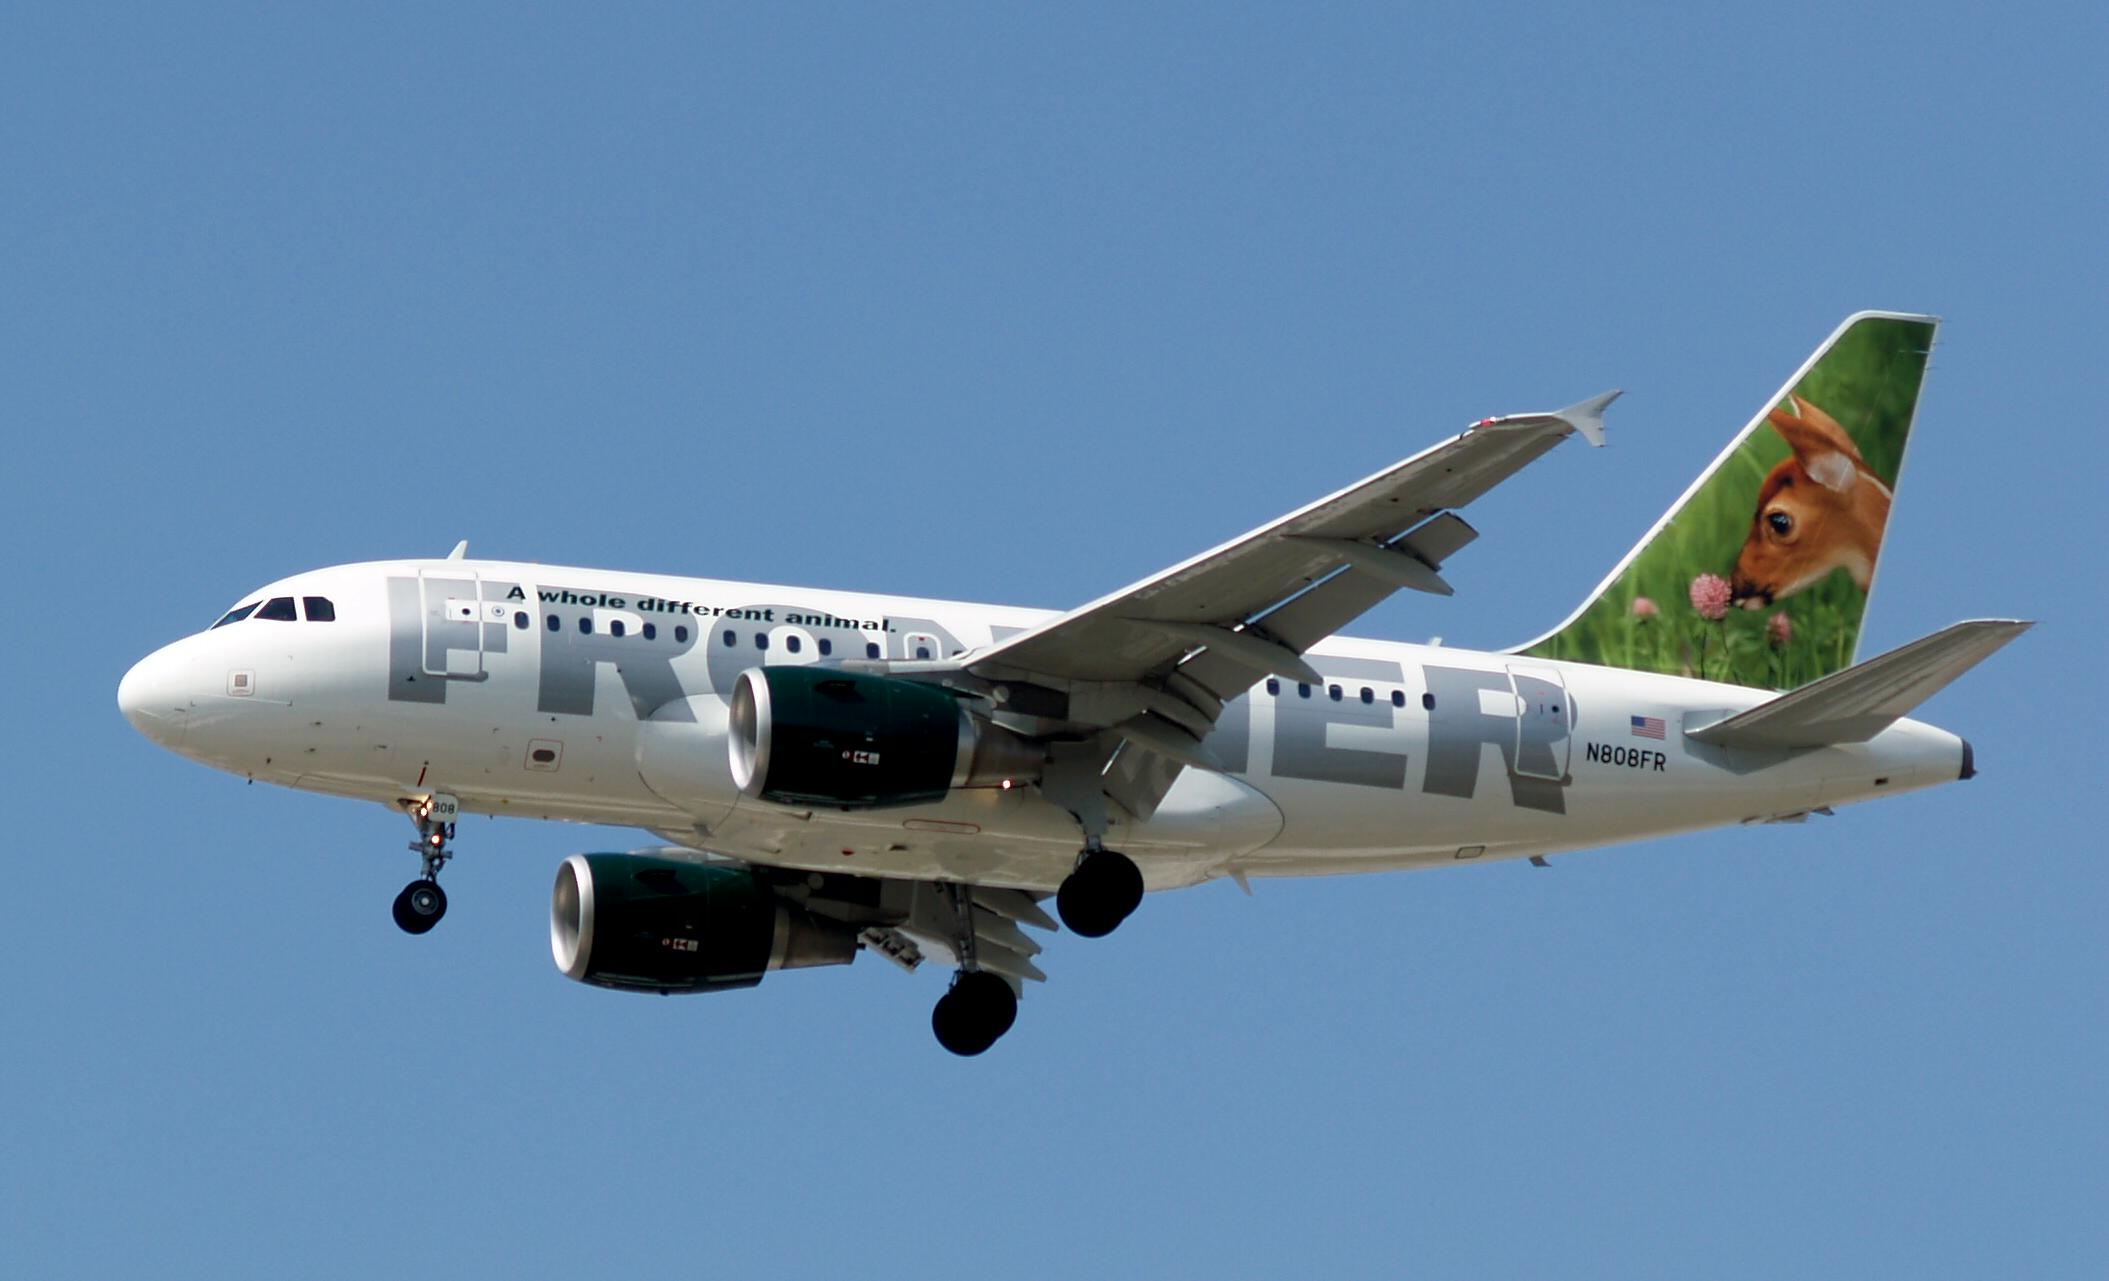 A319 Airlines Planes Frontier